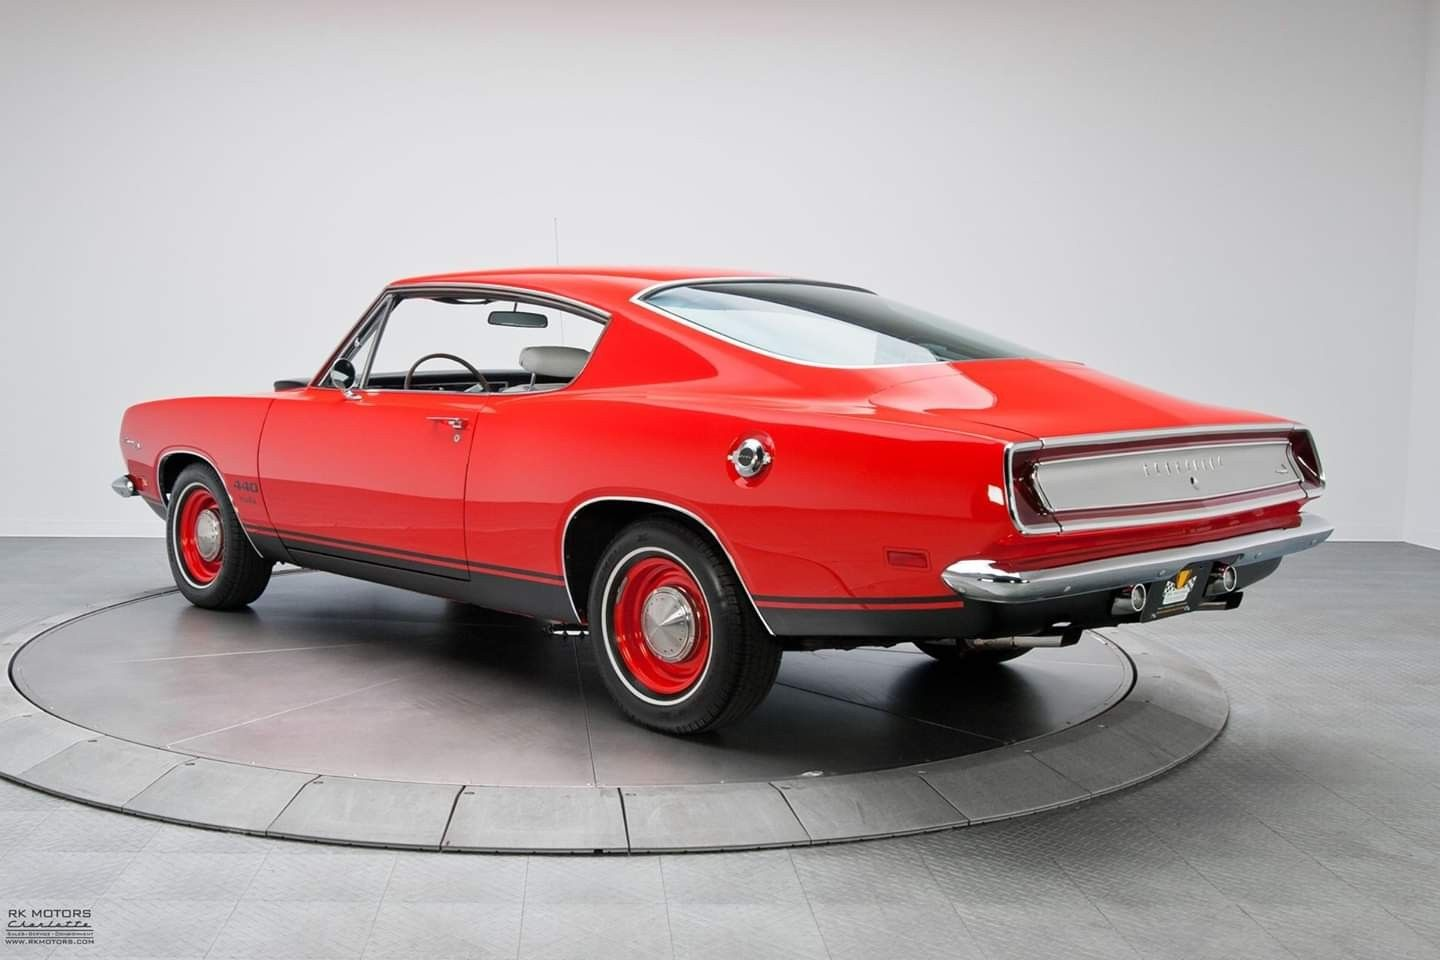 Pin by Julie on Cuda Muscle cars for sale, Muscle cars